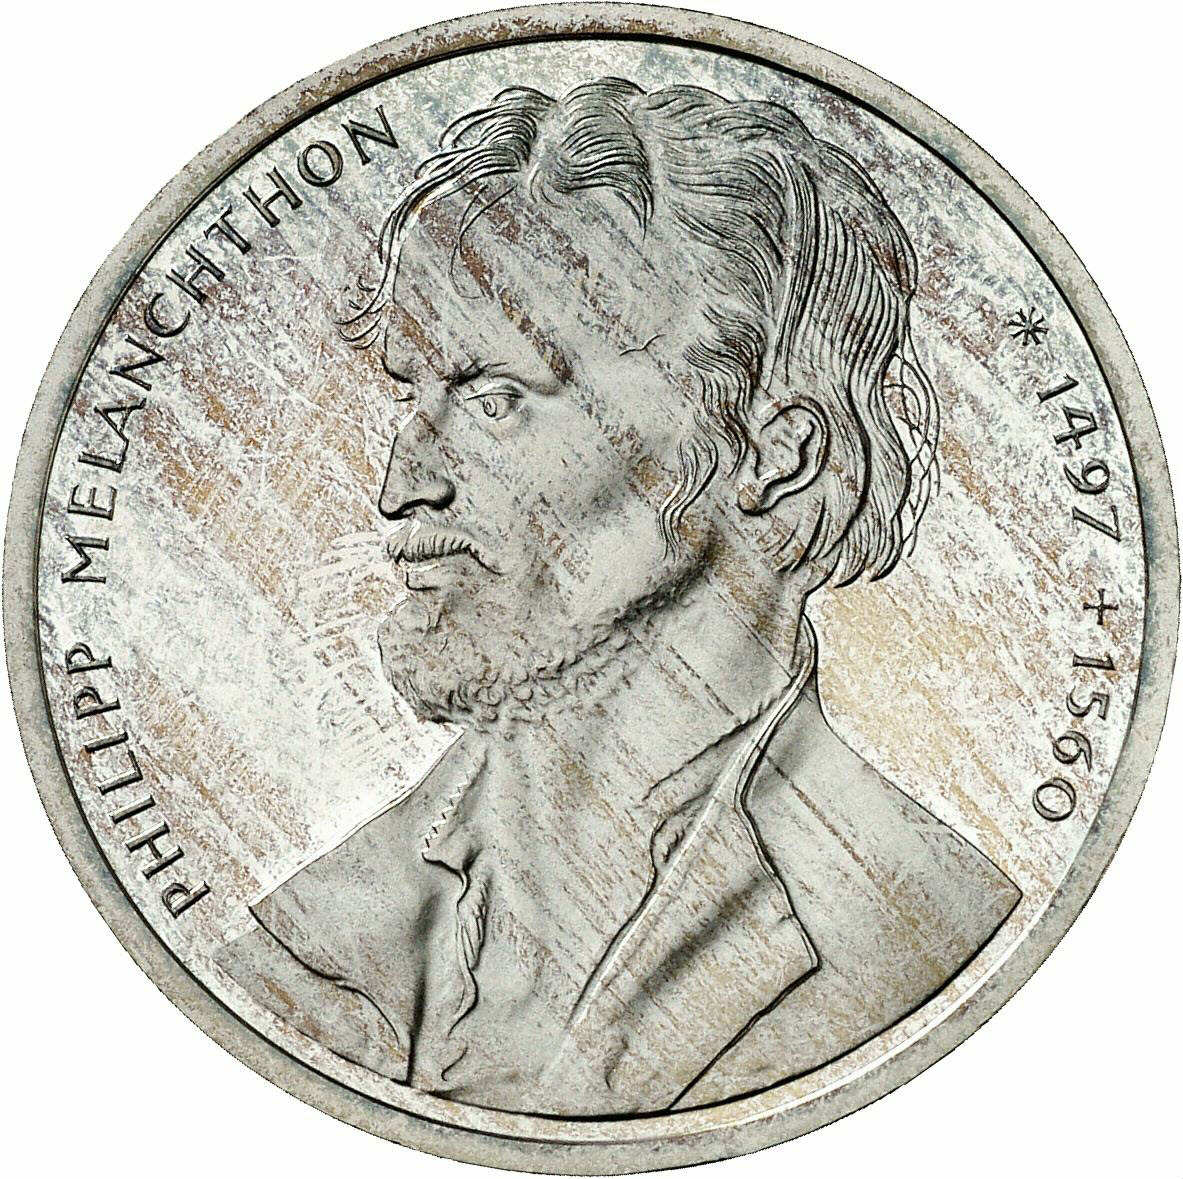 DE 10 Deutsche Mark 1997 J